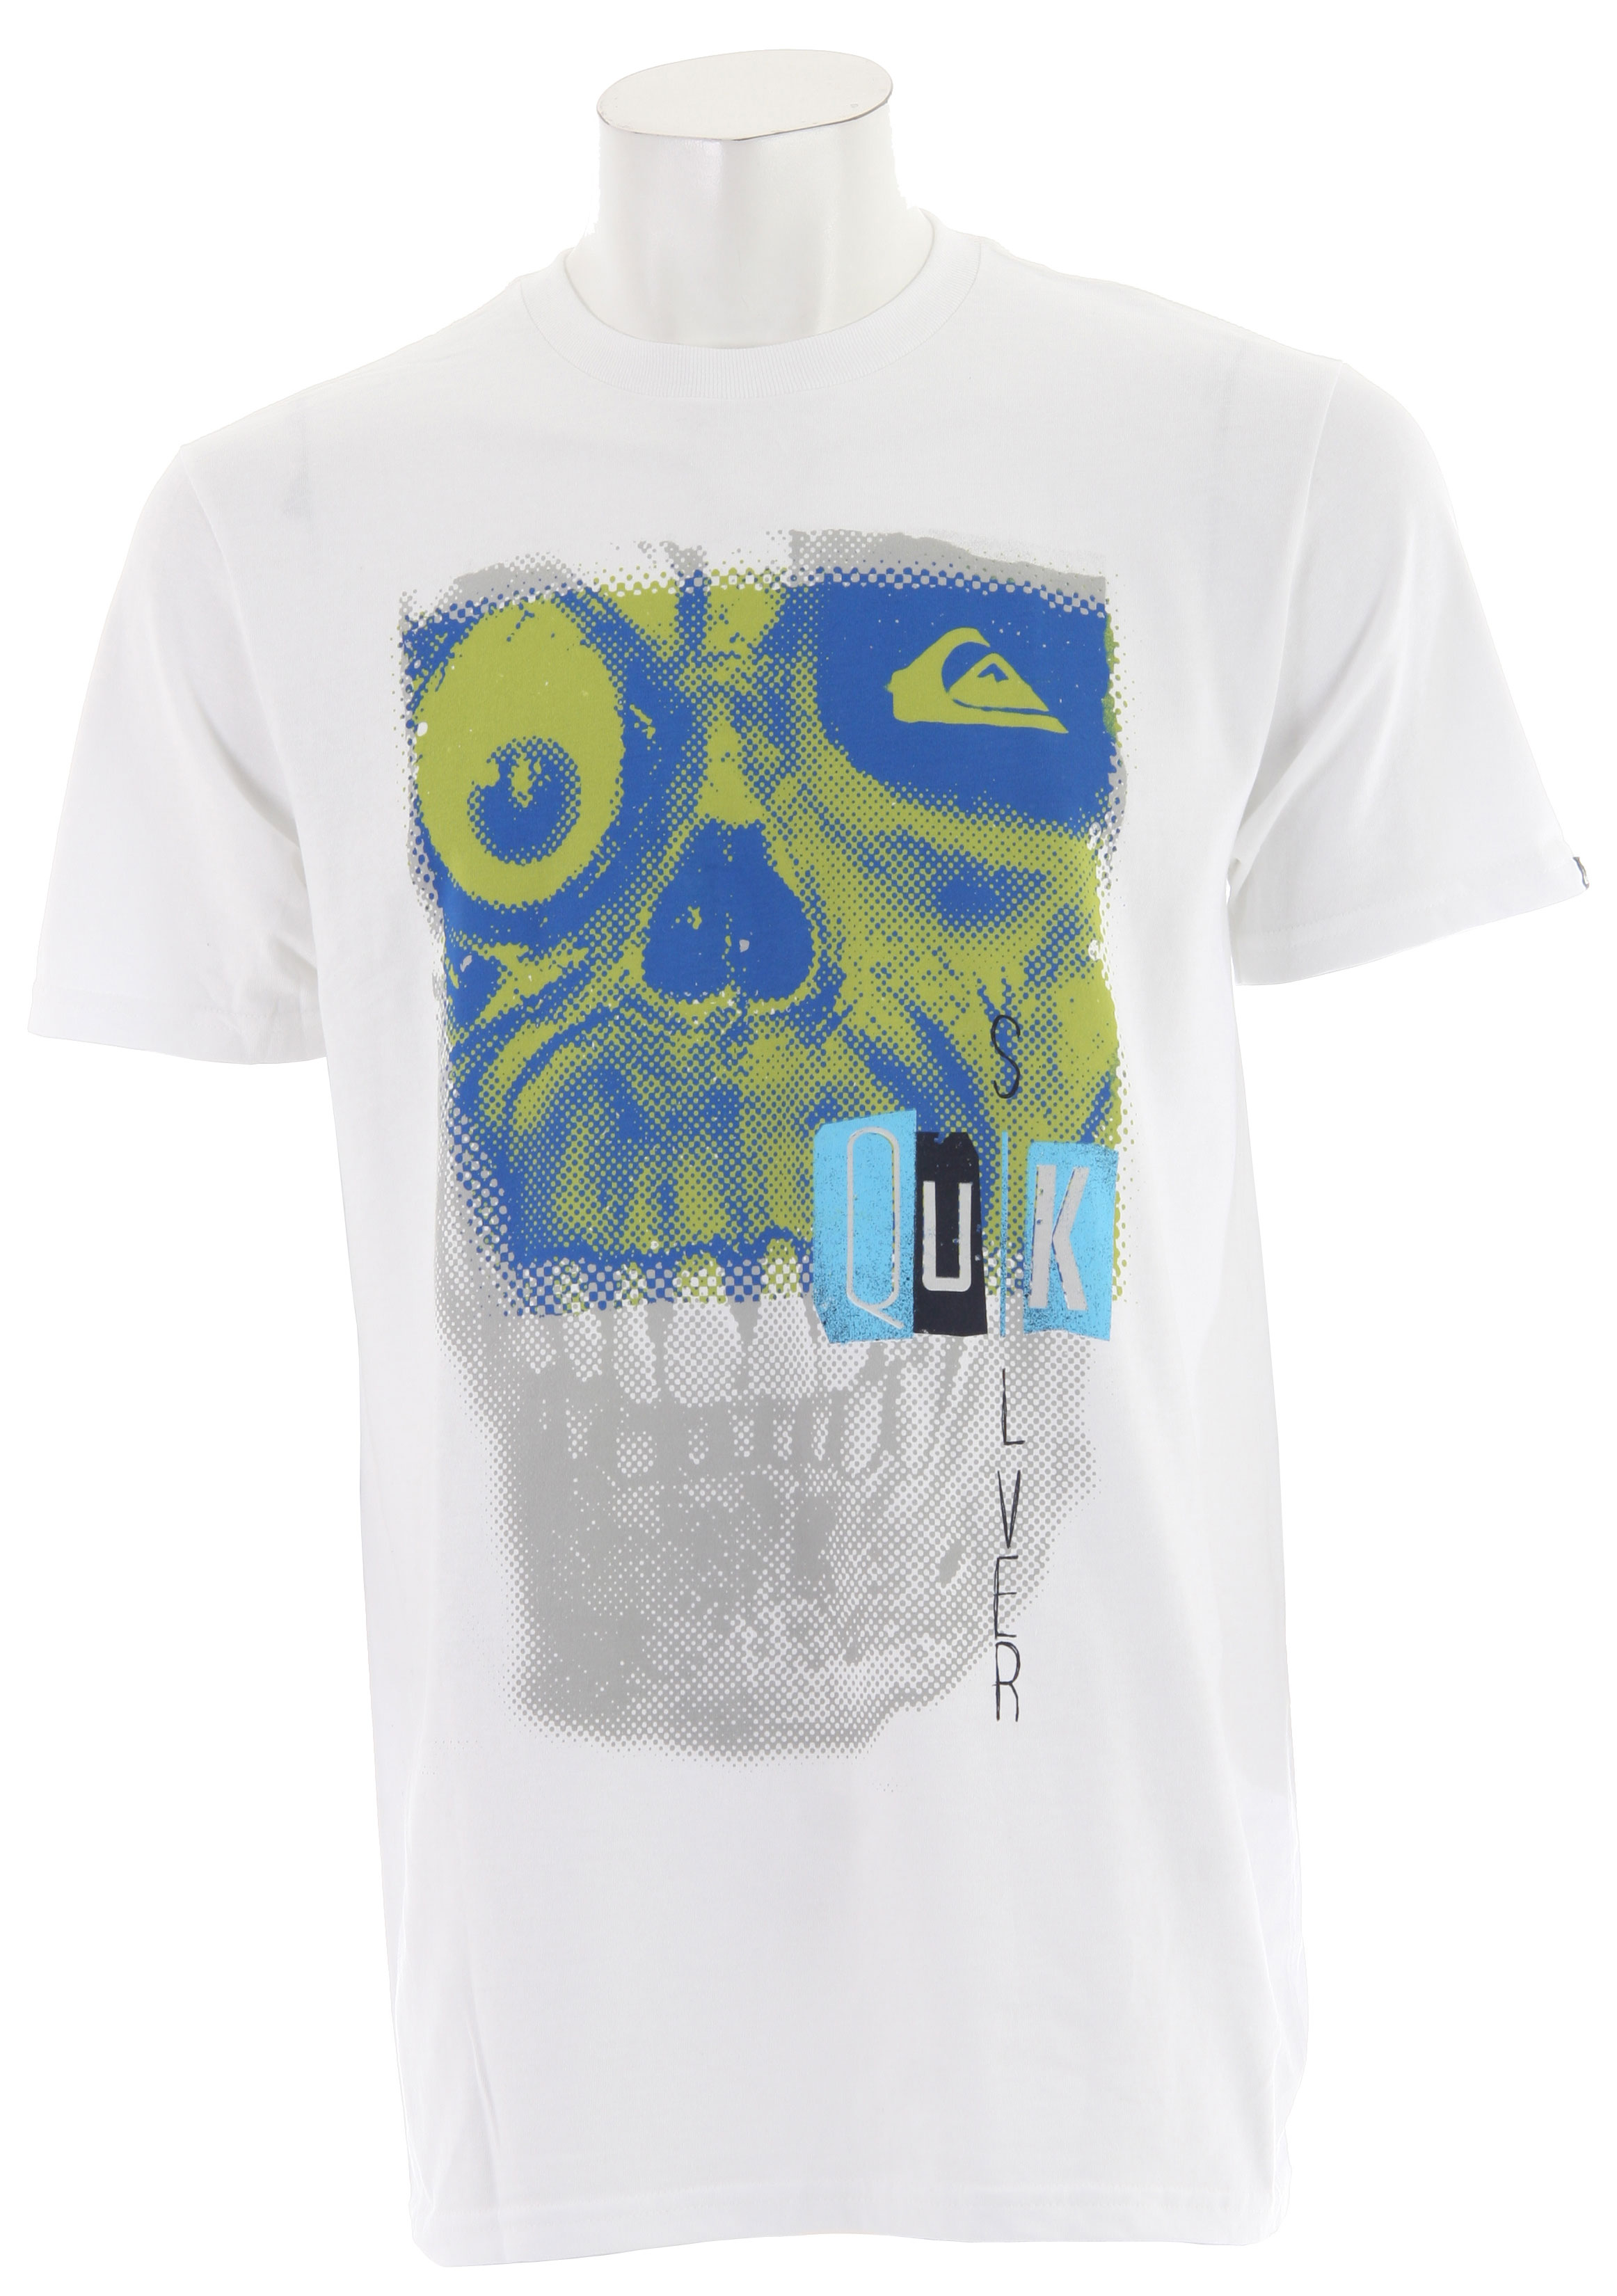 Surf Don't be reckless. Wear a leash, look over your shoulder, hold on to your board and always smile. The rest will come in time.Key Features of the Quiksilver Reckless T-Shirt: 94% Cotton 6% Organic Cotton Heat sealed neck label - $13.95